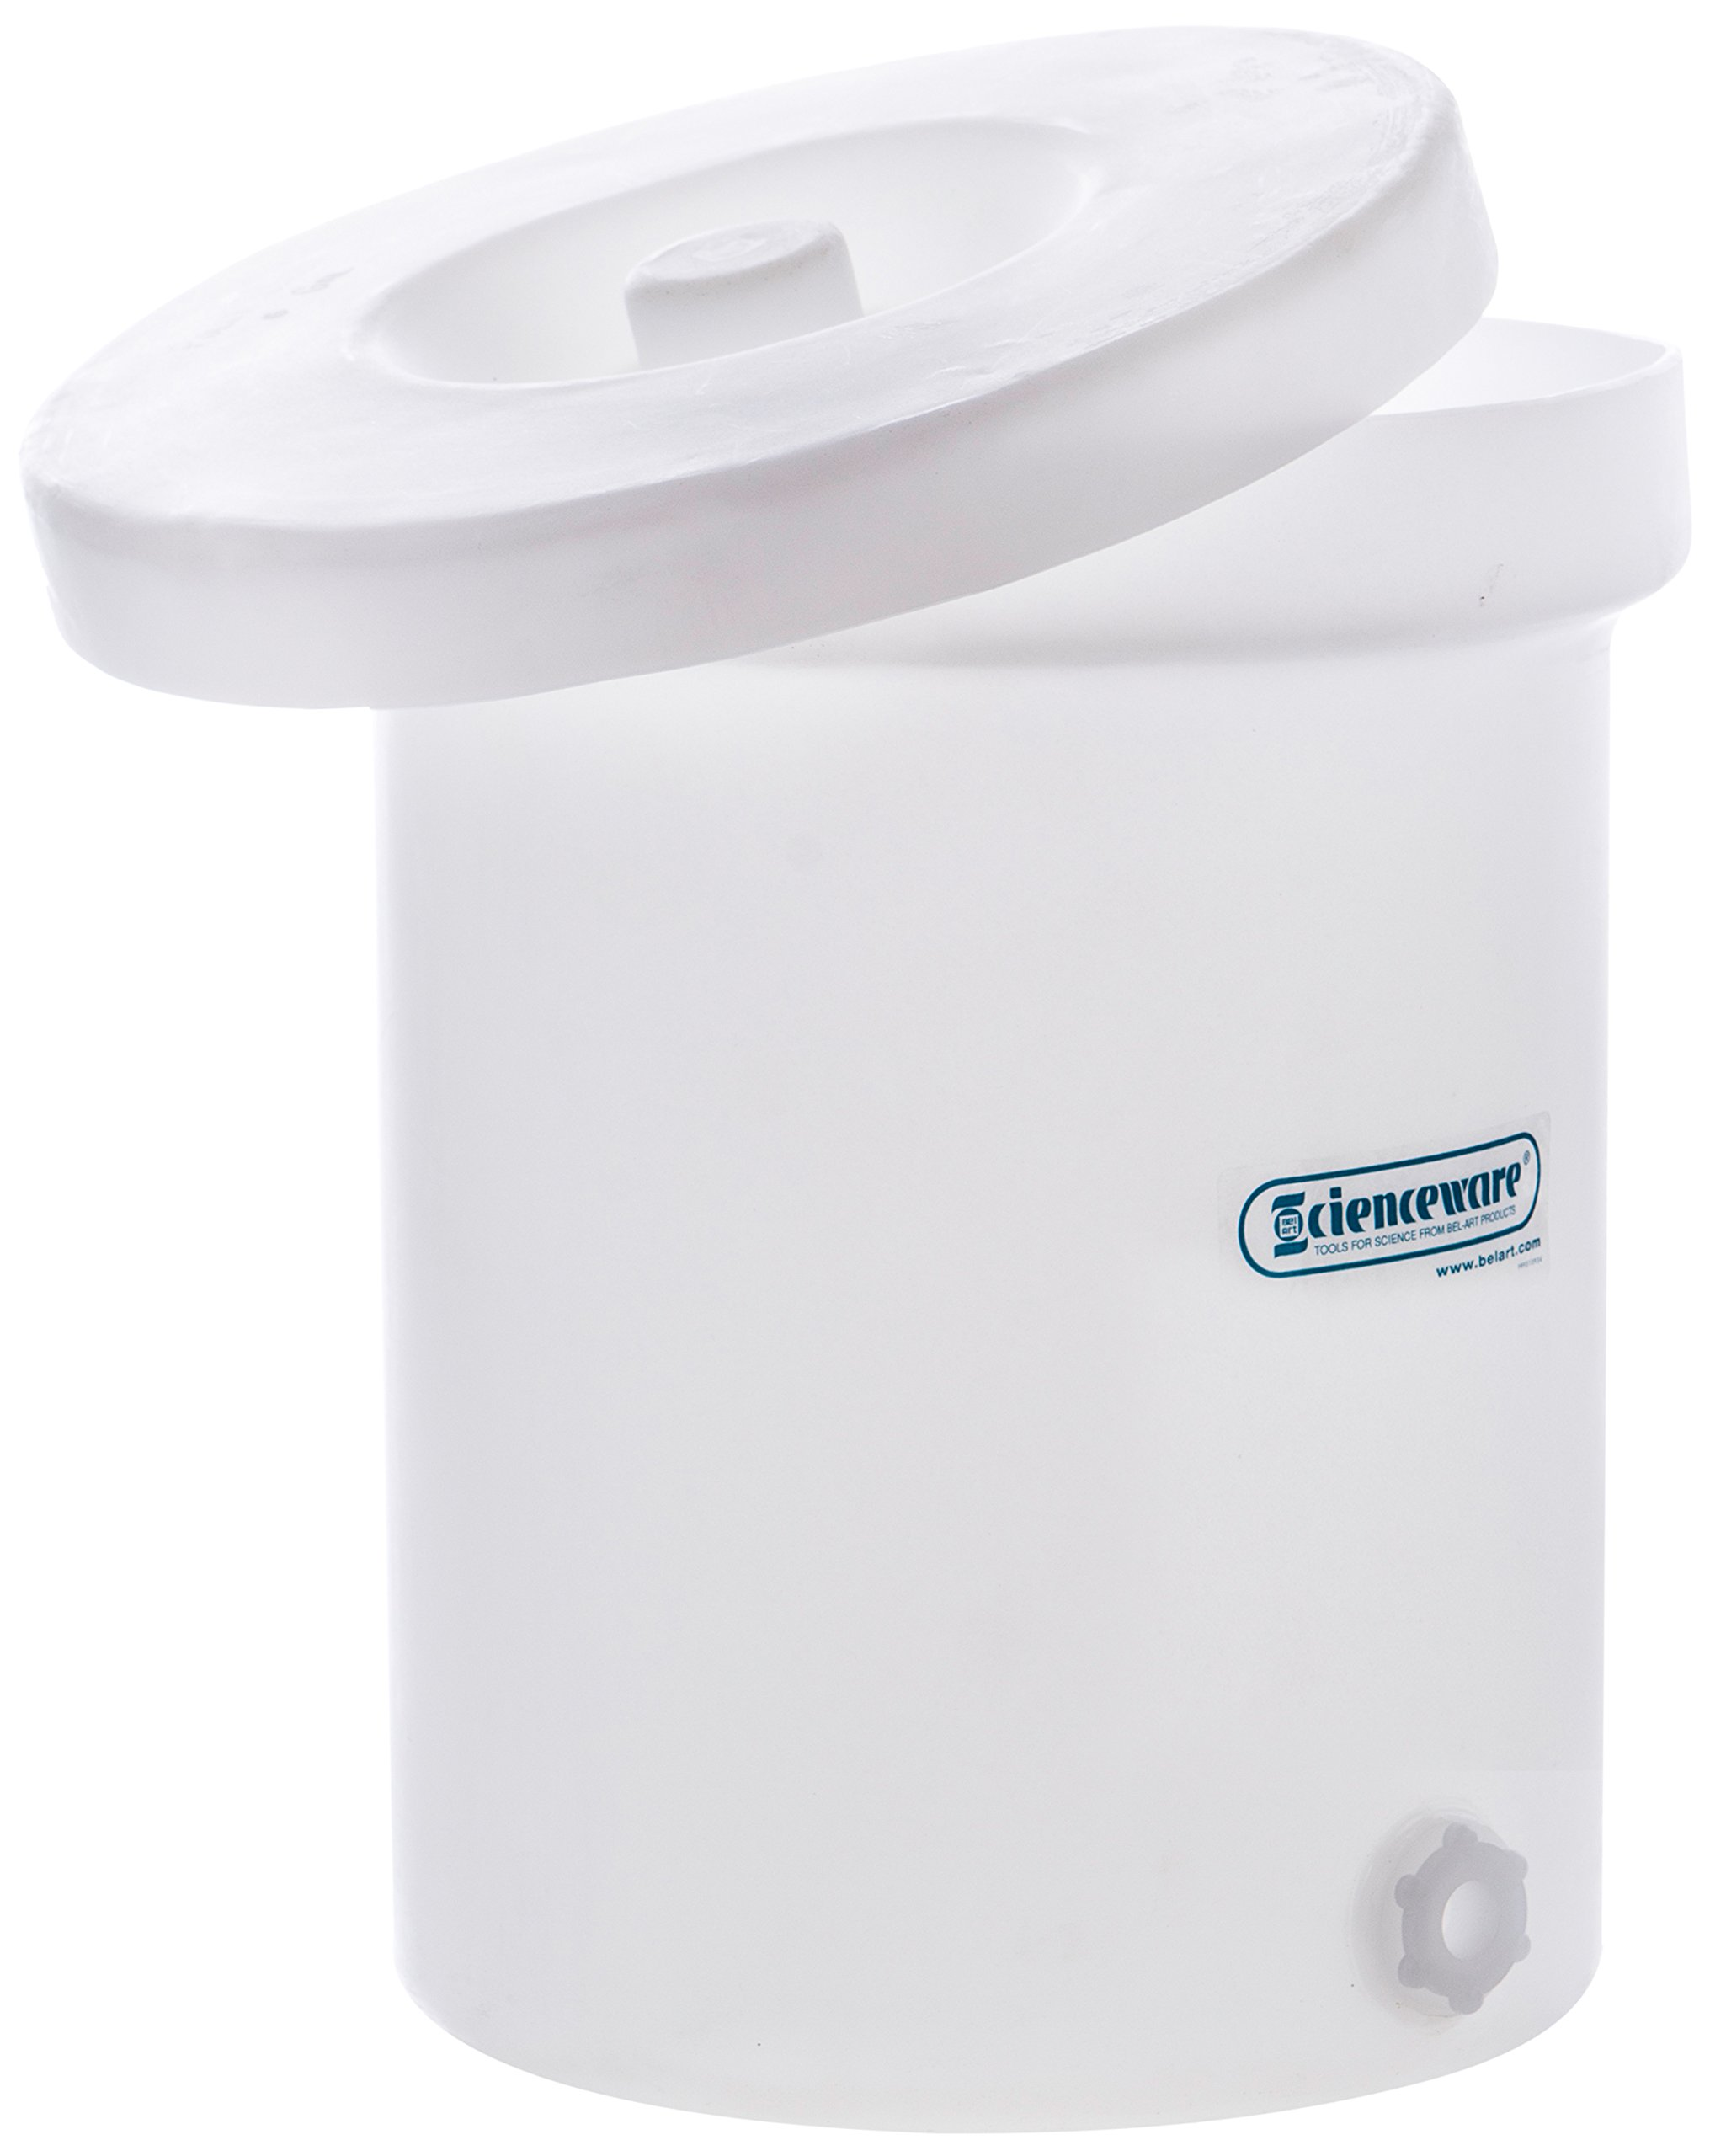 Bel-Art Polly-Crock Polyethylene Tank with Lid, Without Faucet; 6gal (H35106-0000)